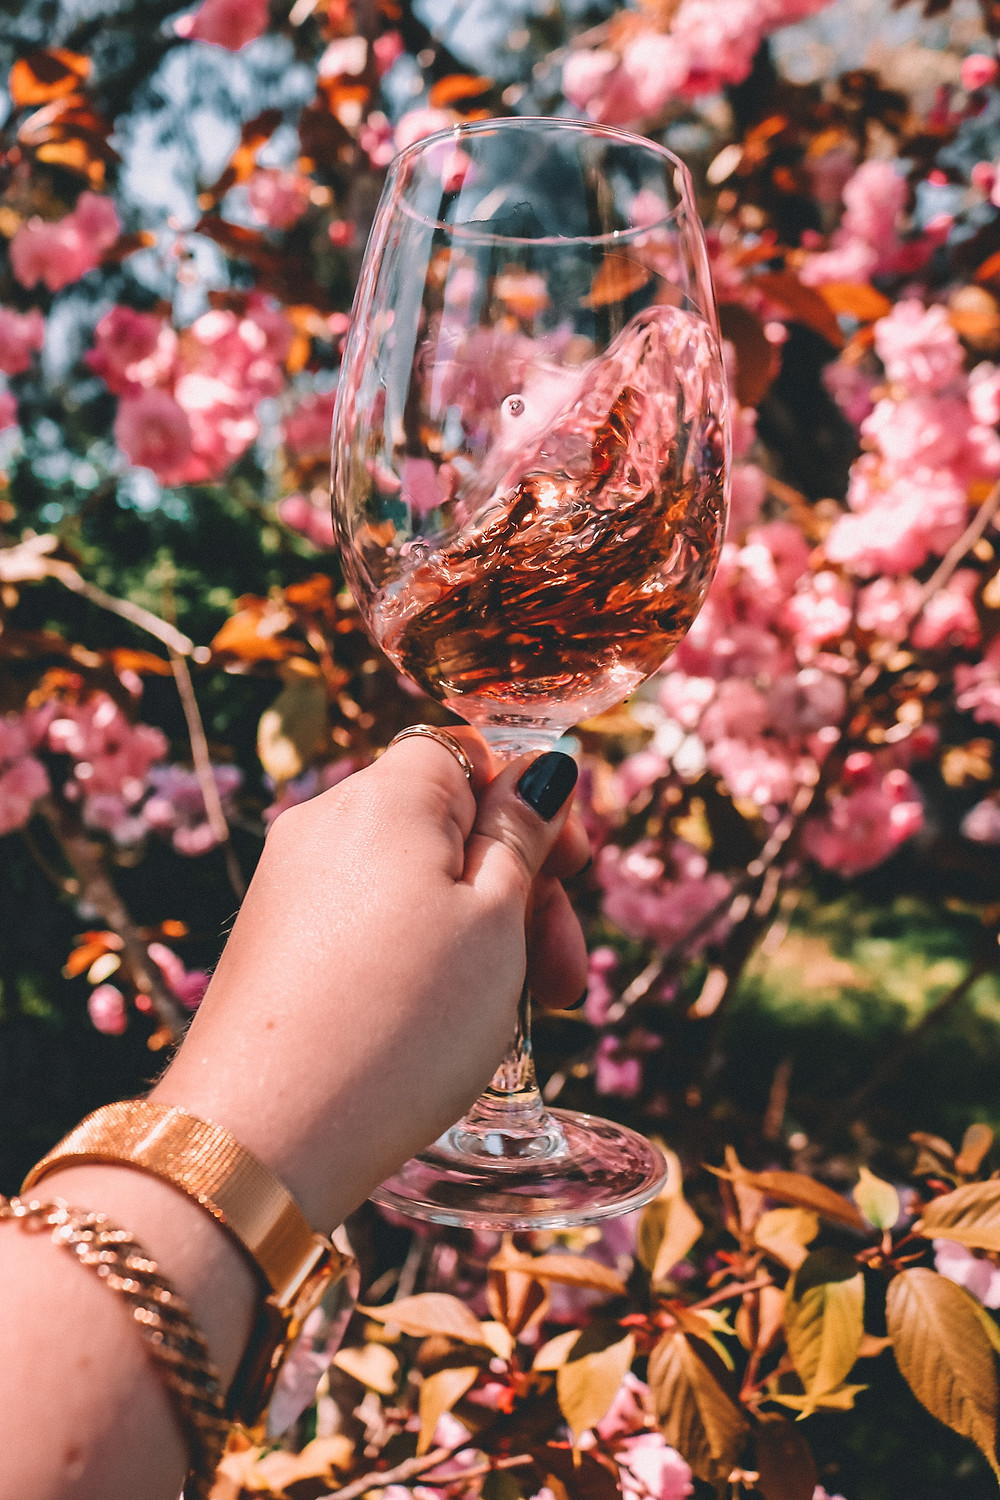 Rosé for spring in front of blossom trees